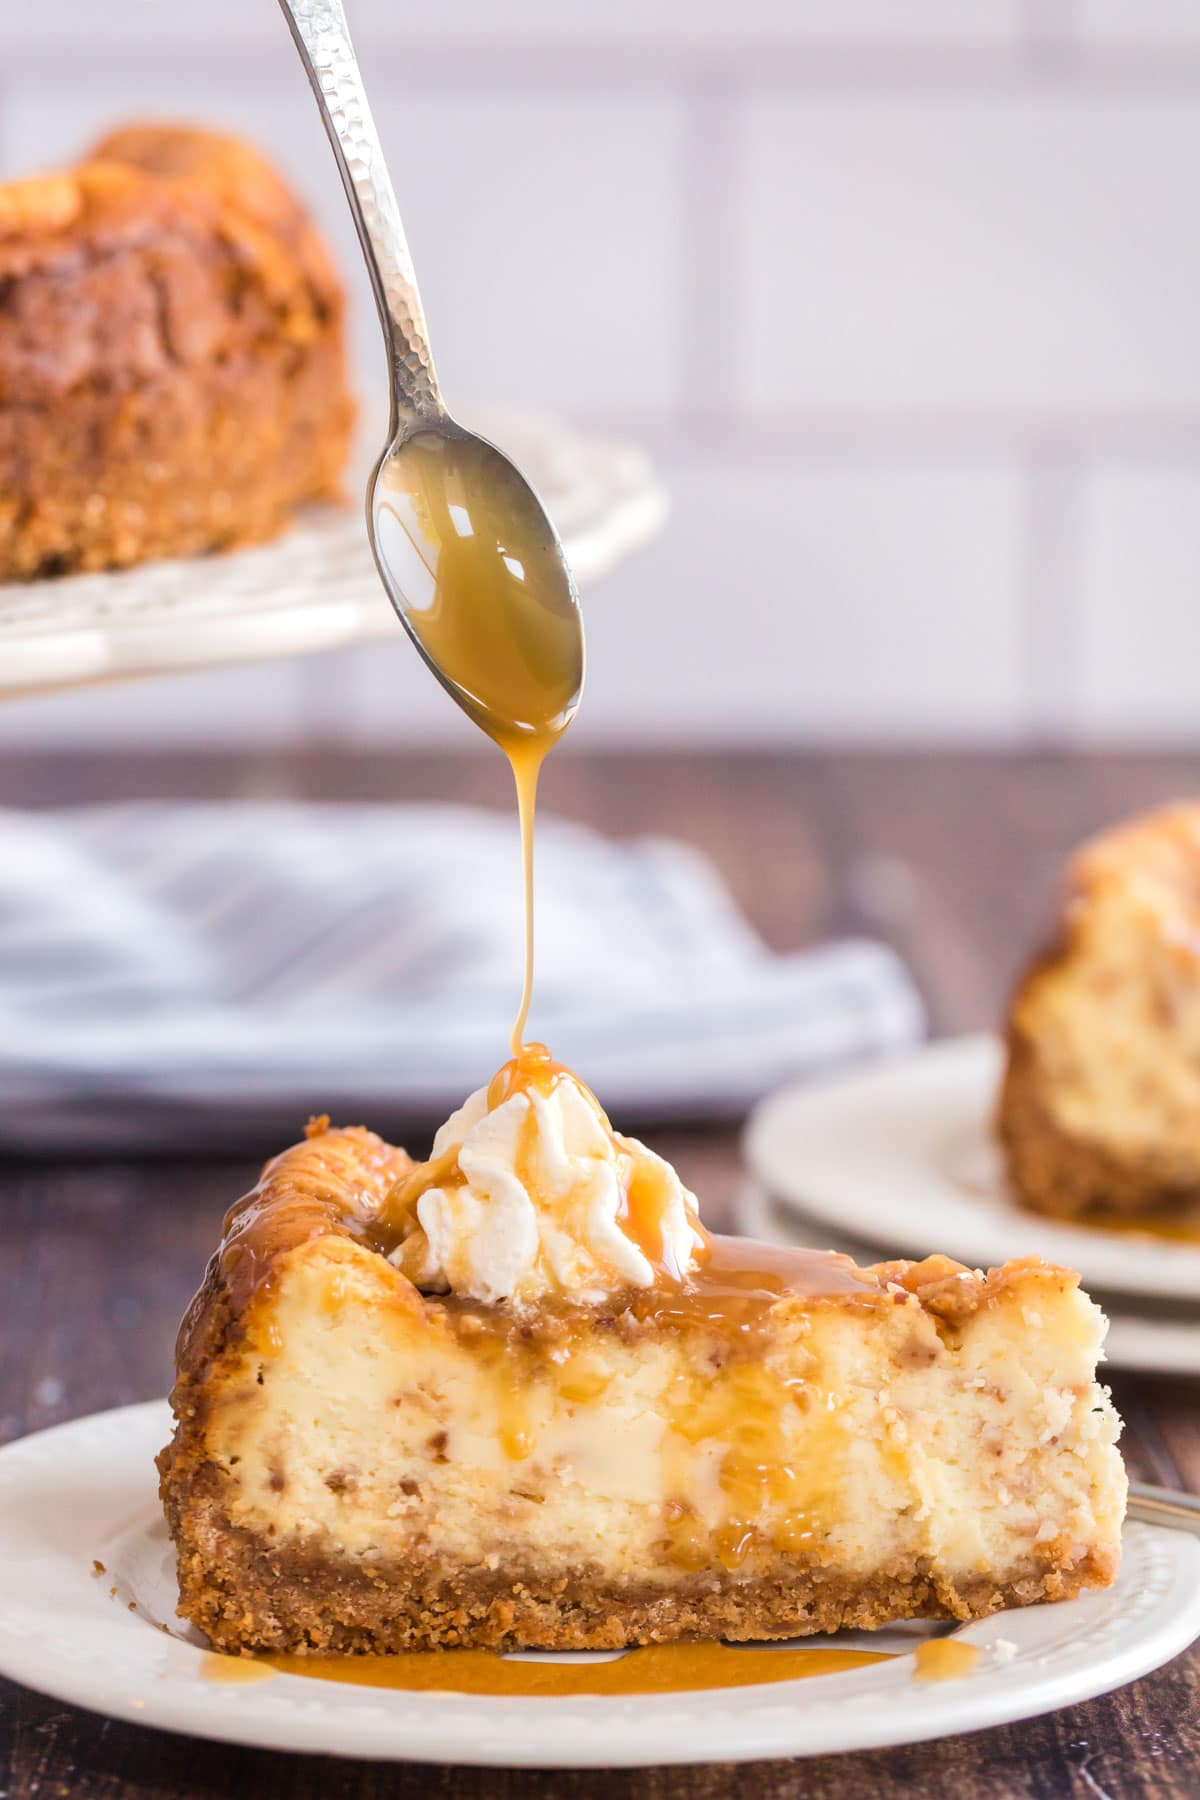 caramel sauce being drizzled over cheesecake